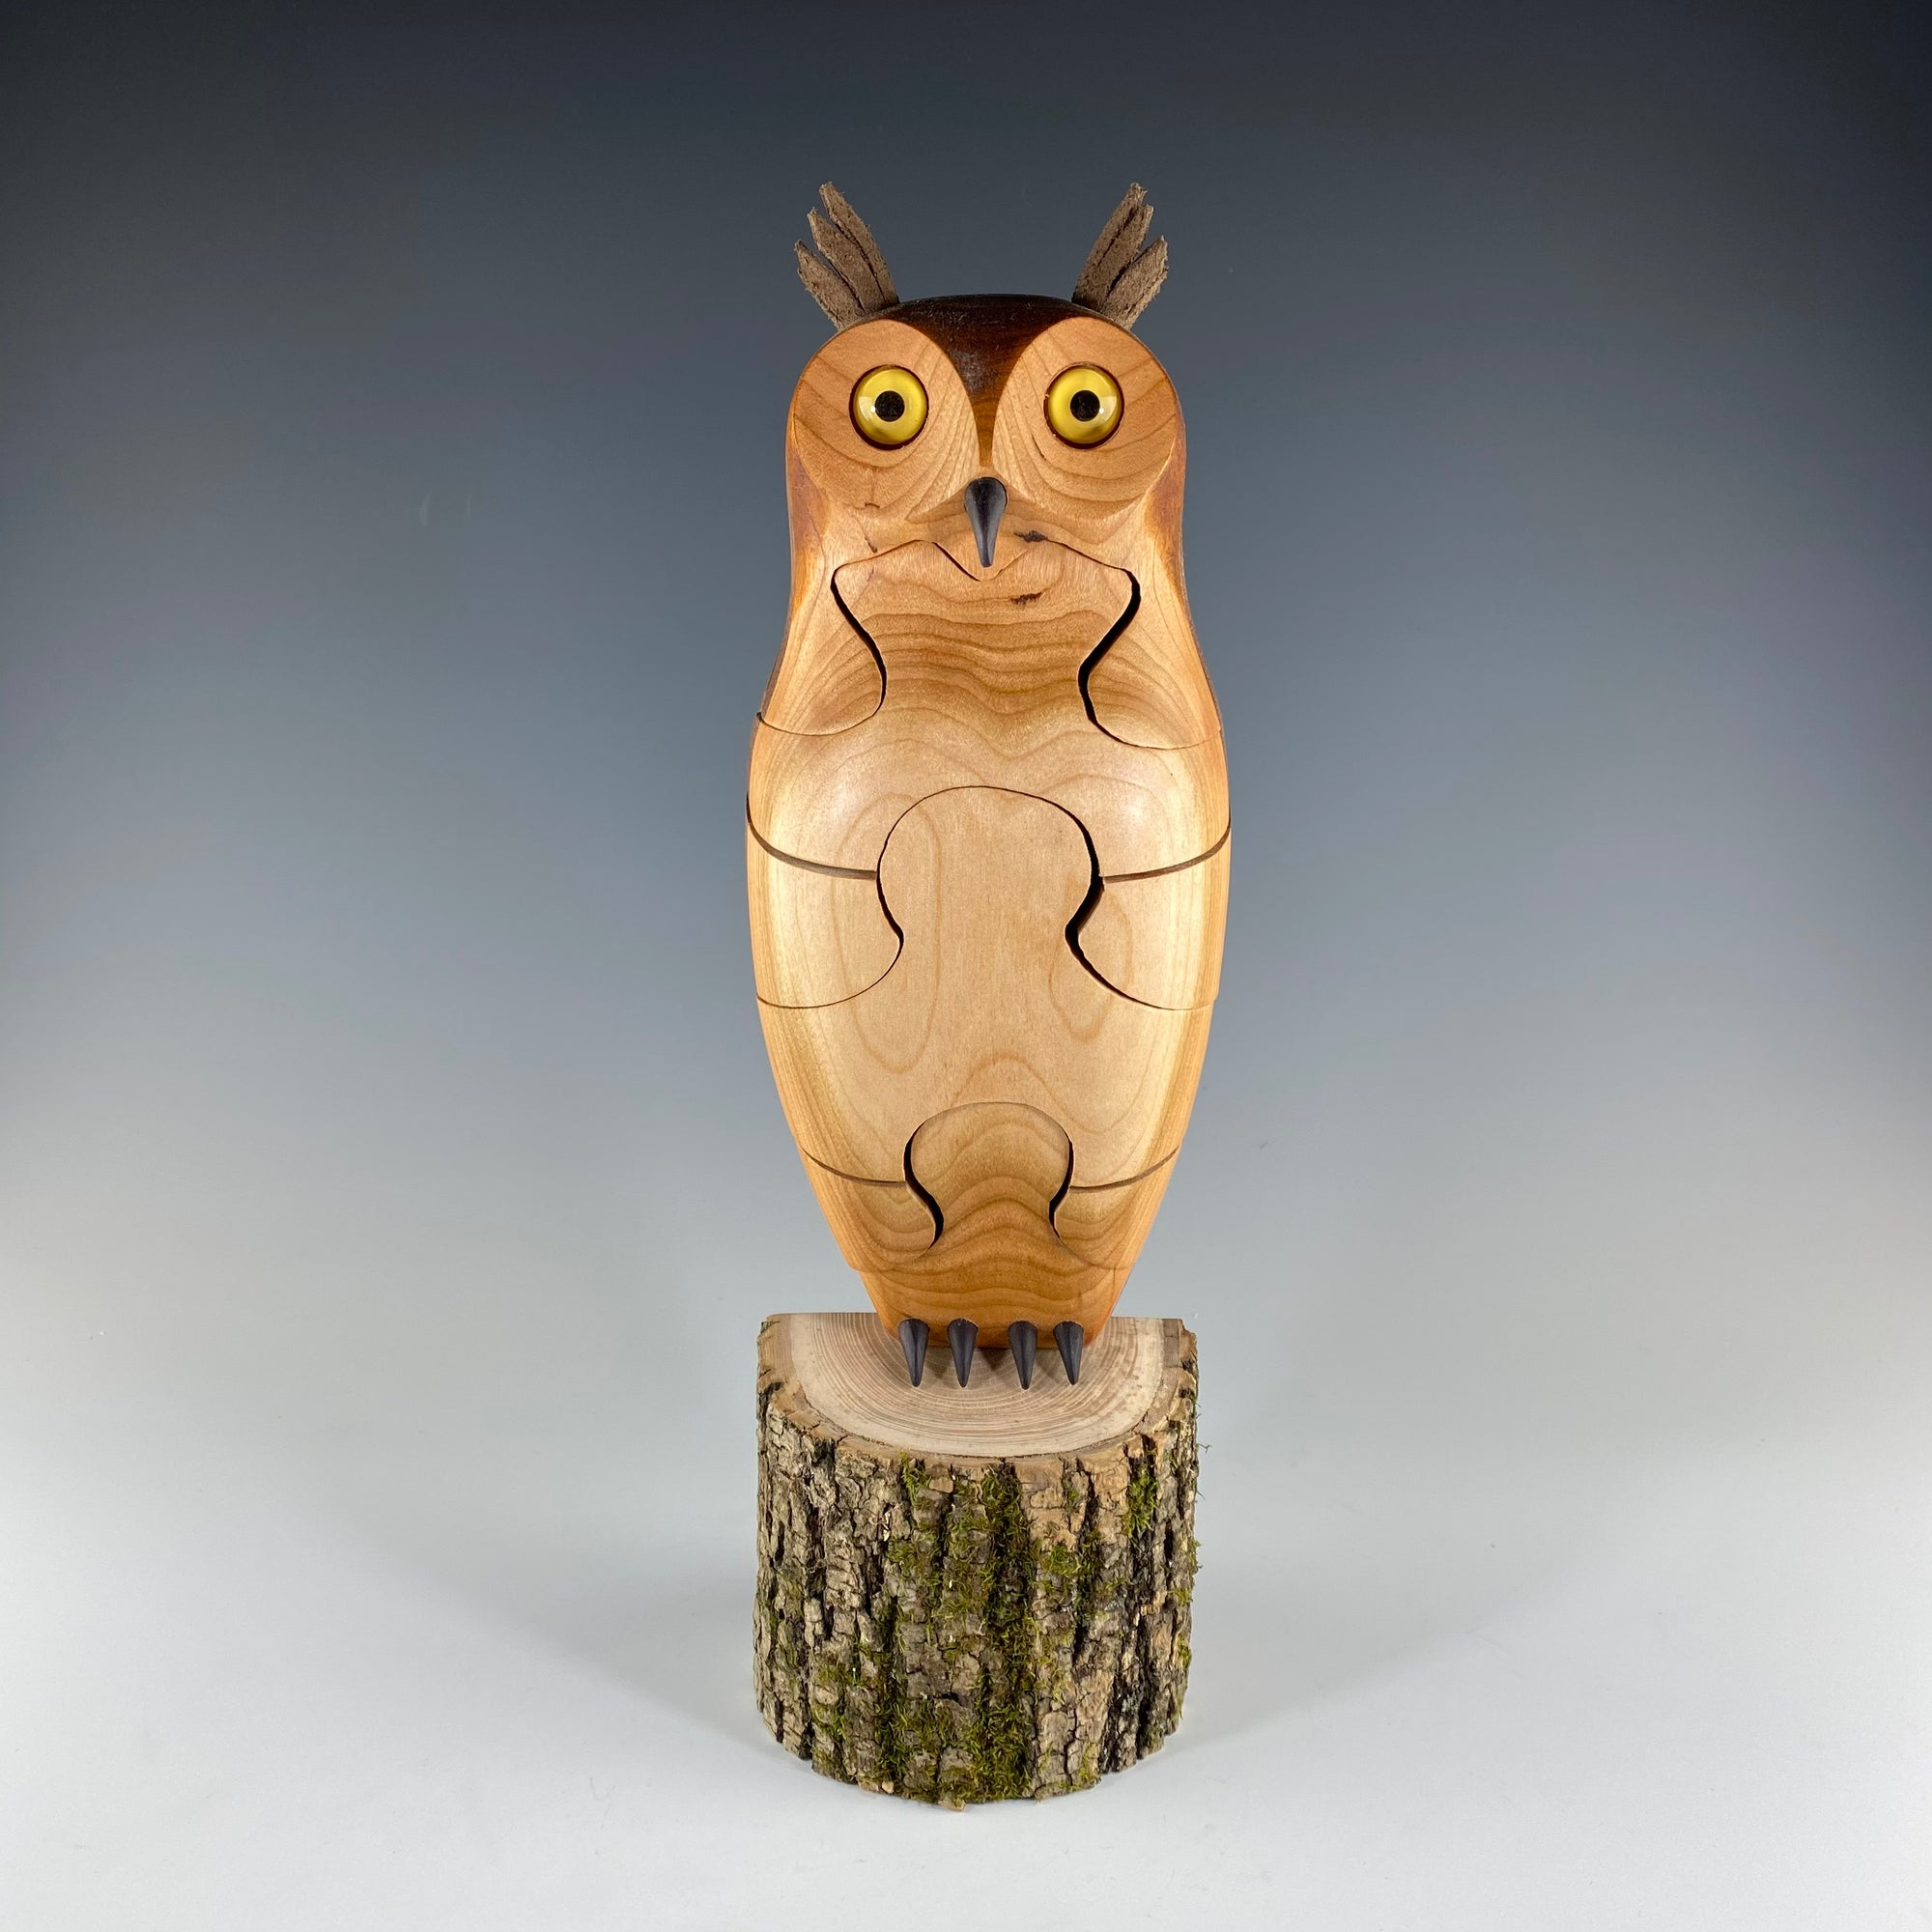 Great Horned Owl Puzzle - Heart of the Home PA